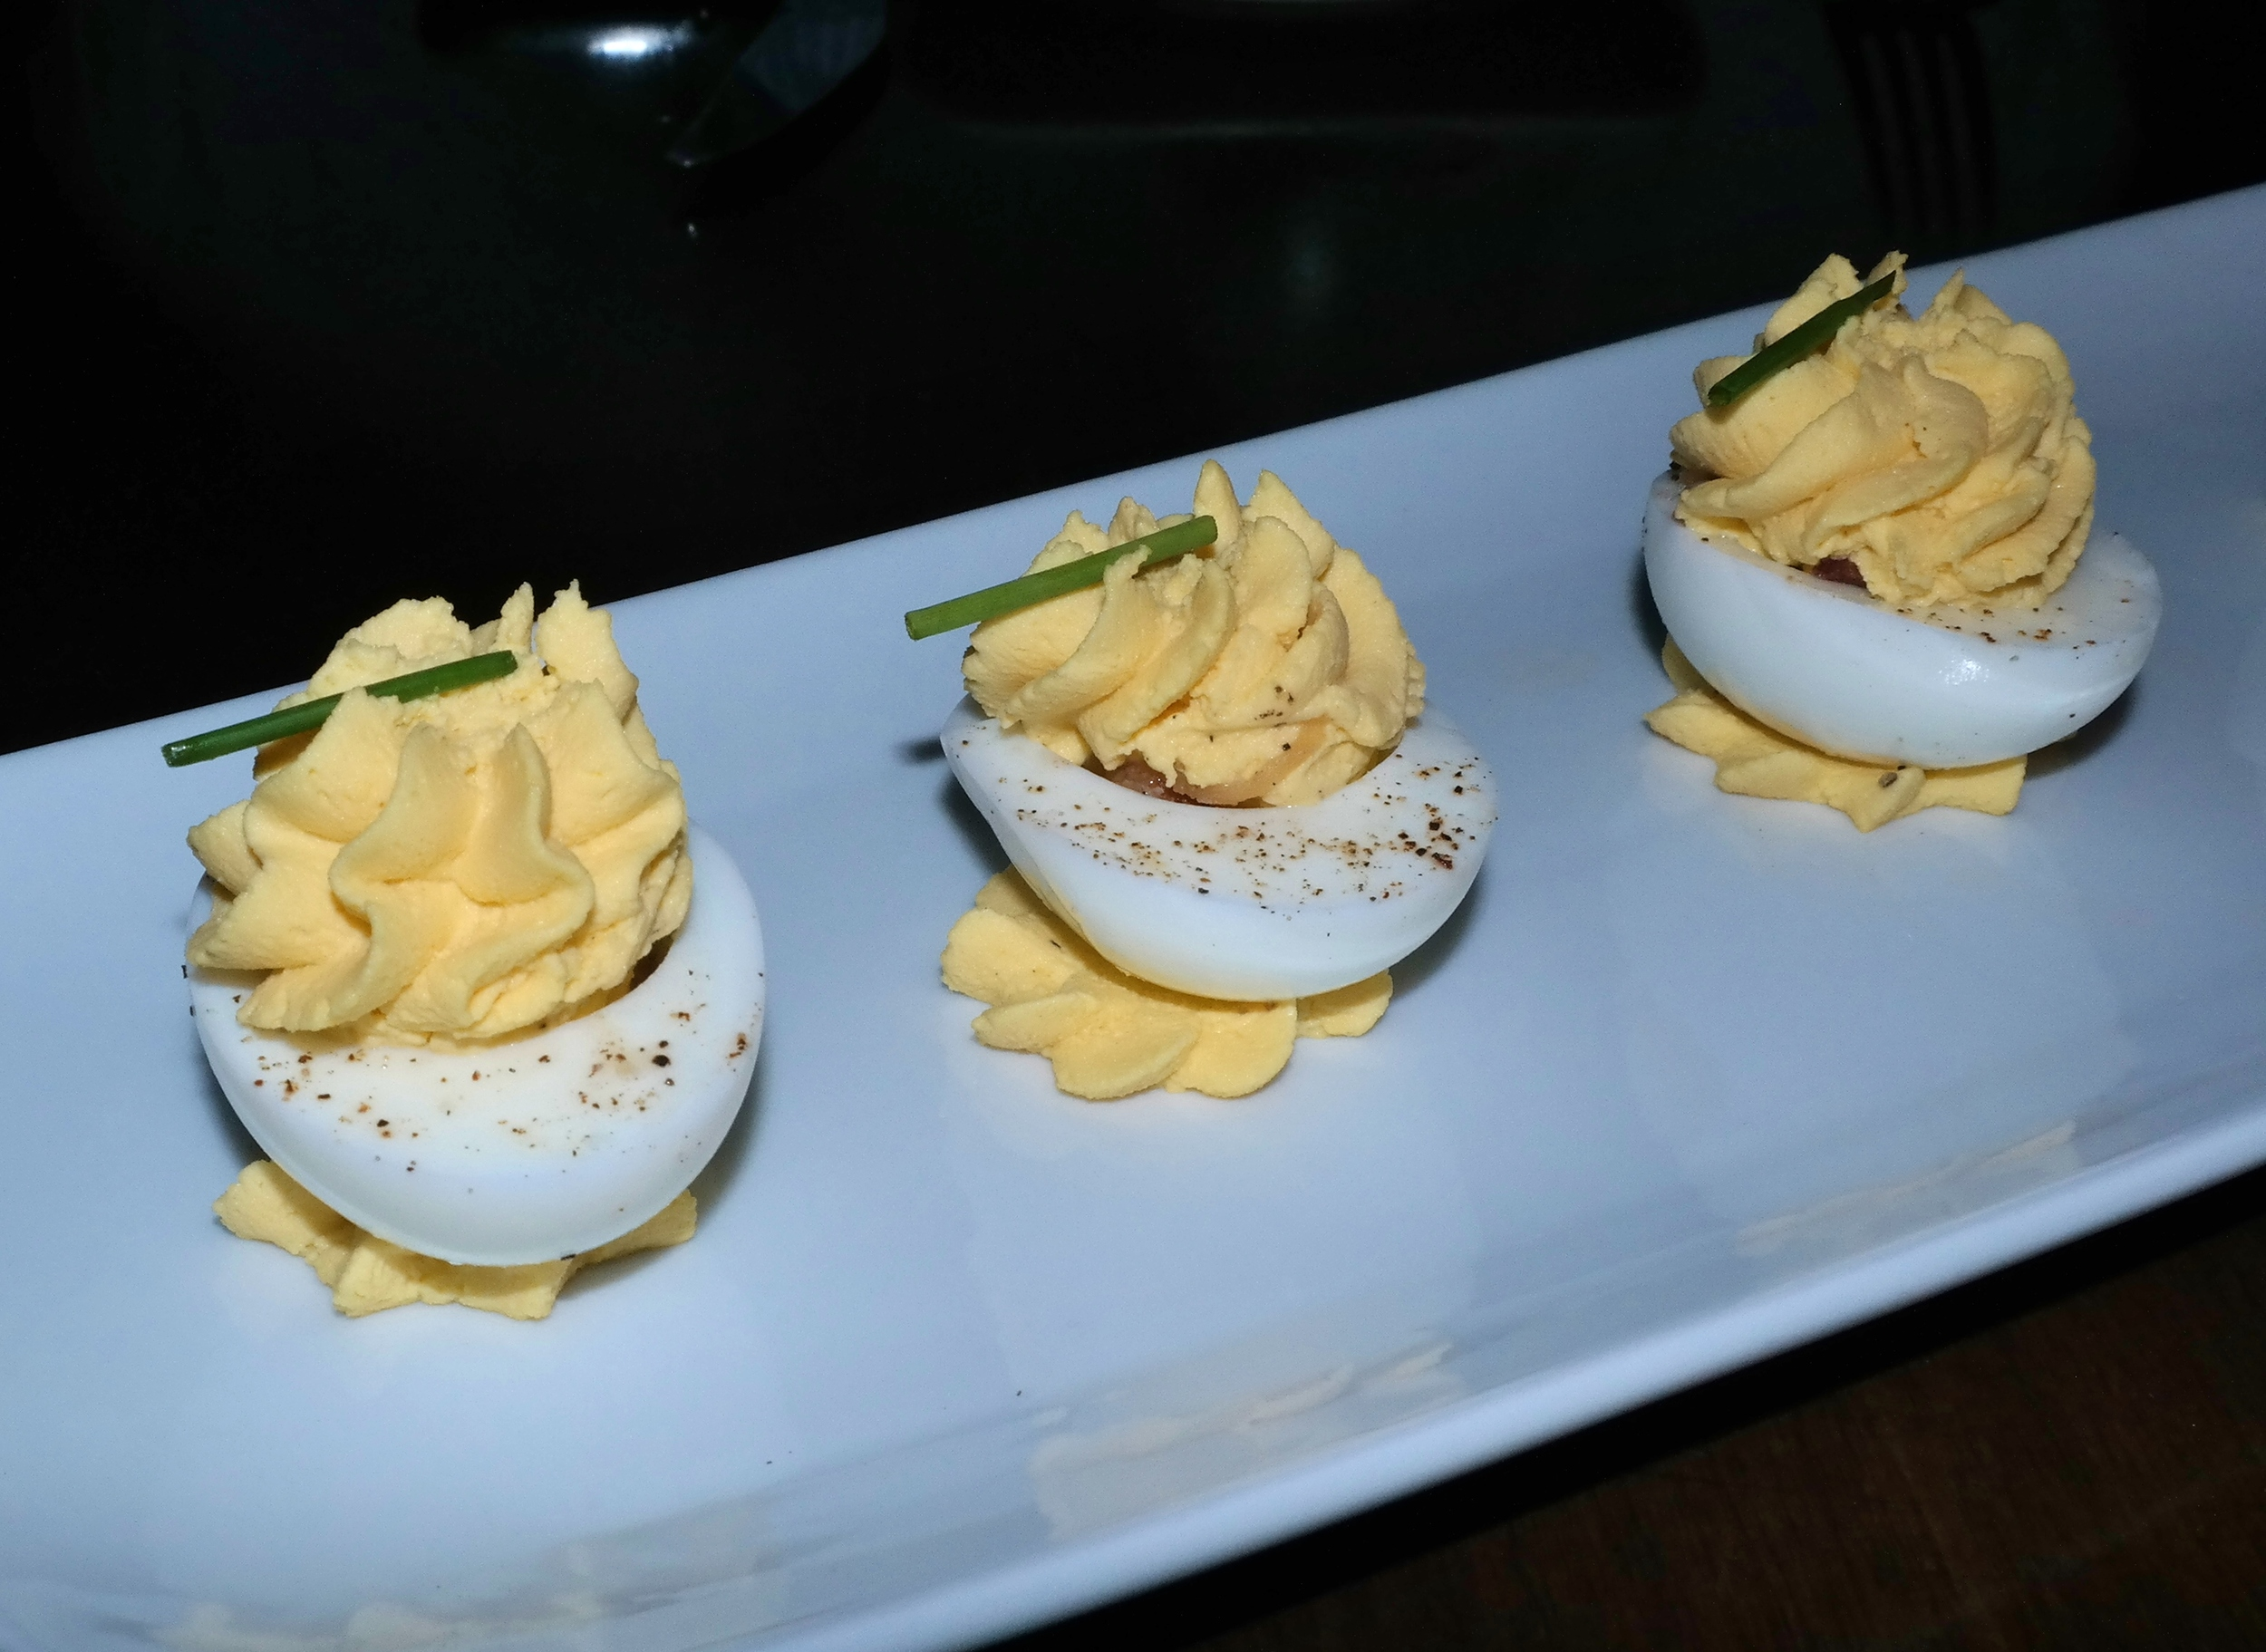 Hickman's Farm deviled eggs with Dijon and bacon jam